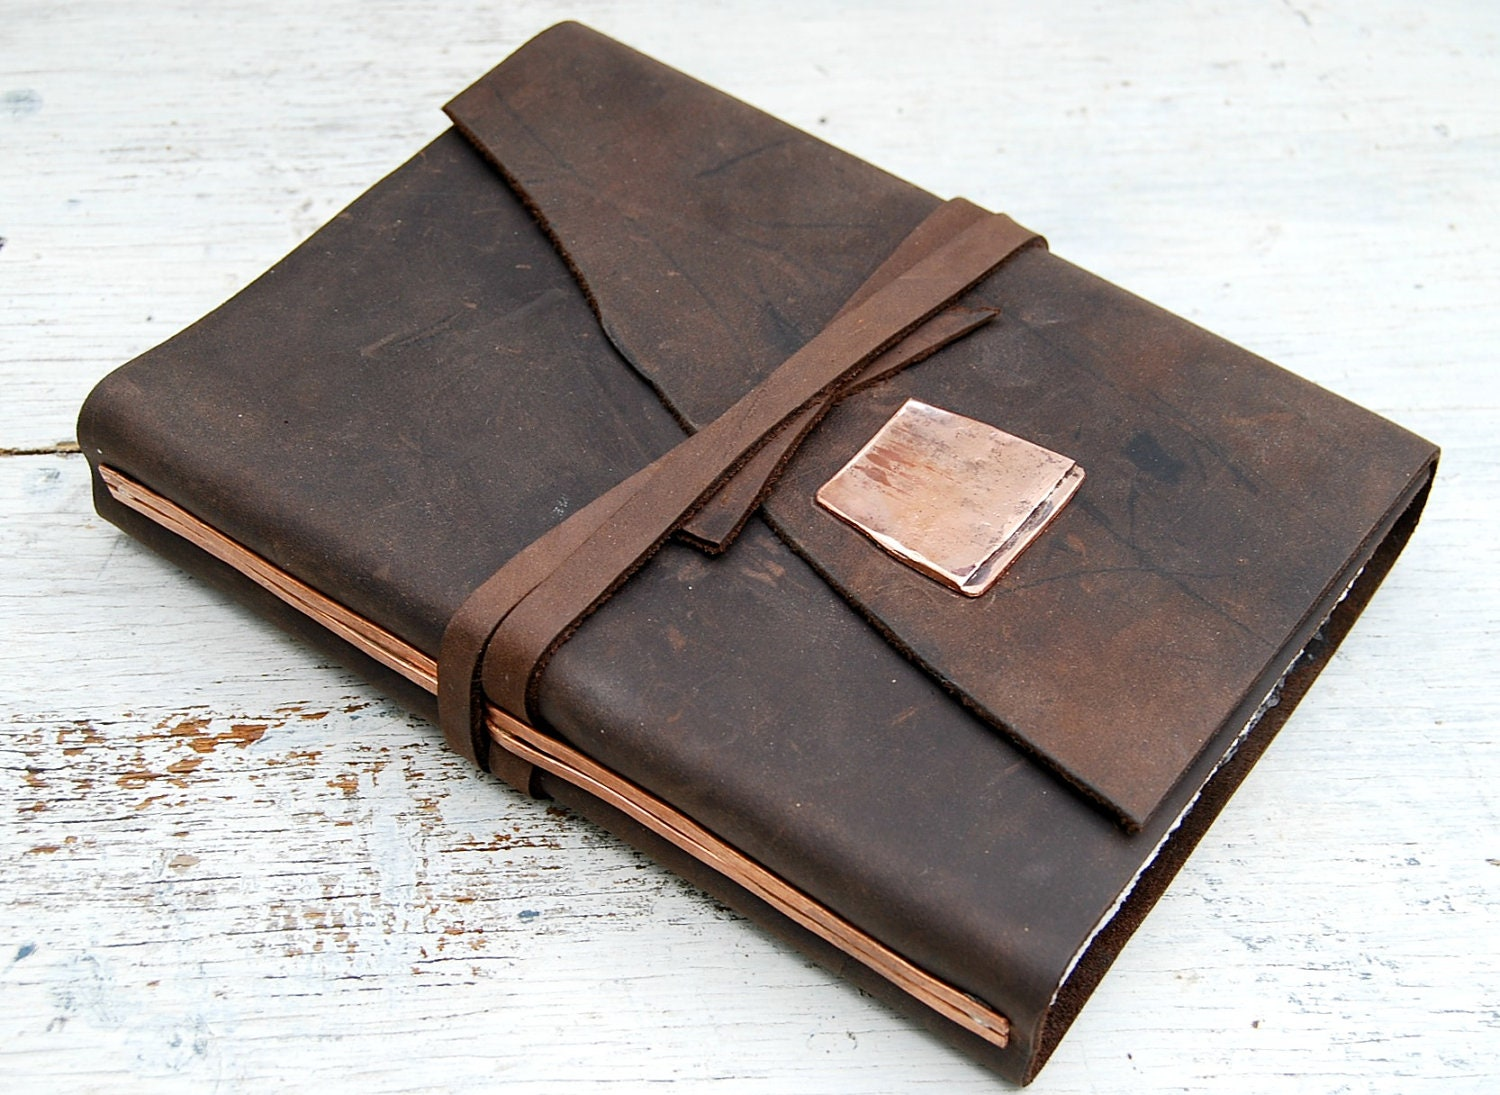 Handmade Leather Journal Plain Brown Diary Leather Sketchbook Notebook Artist8x6